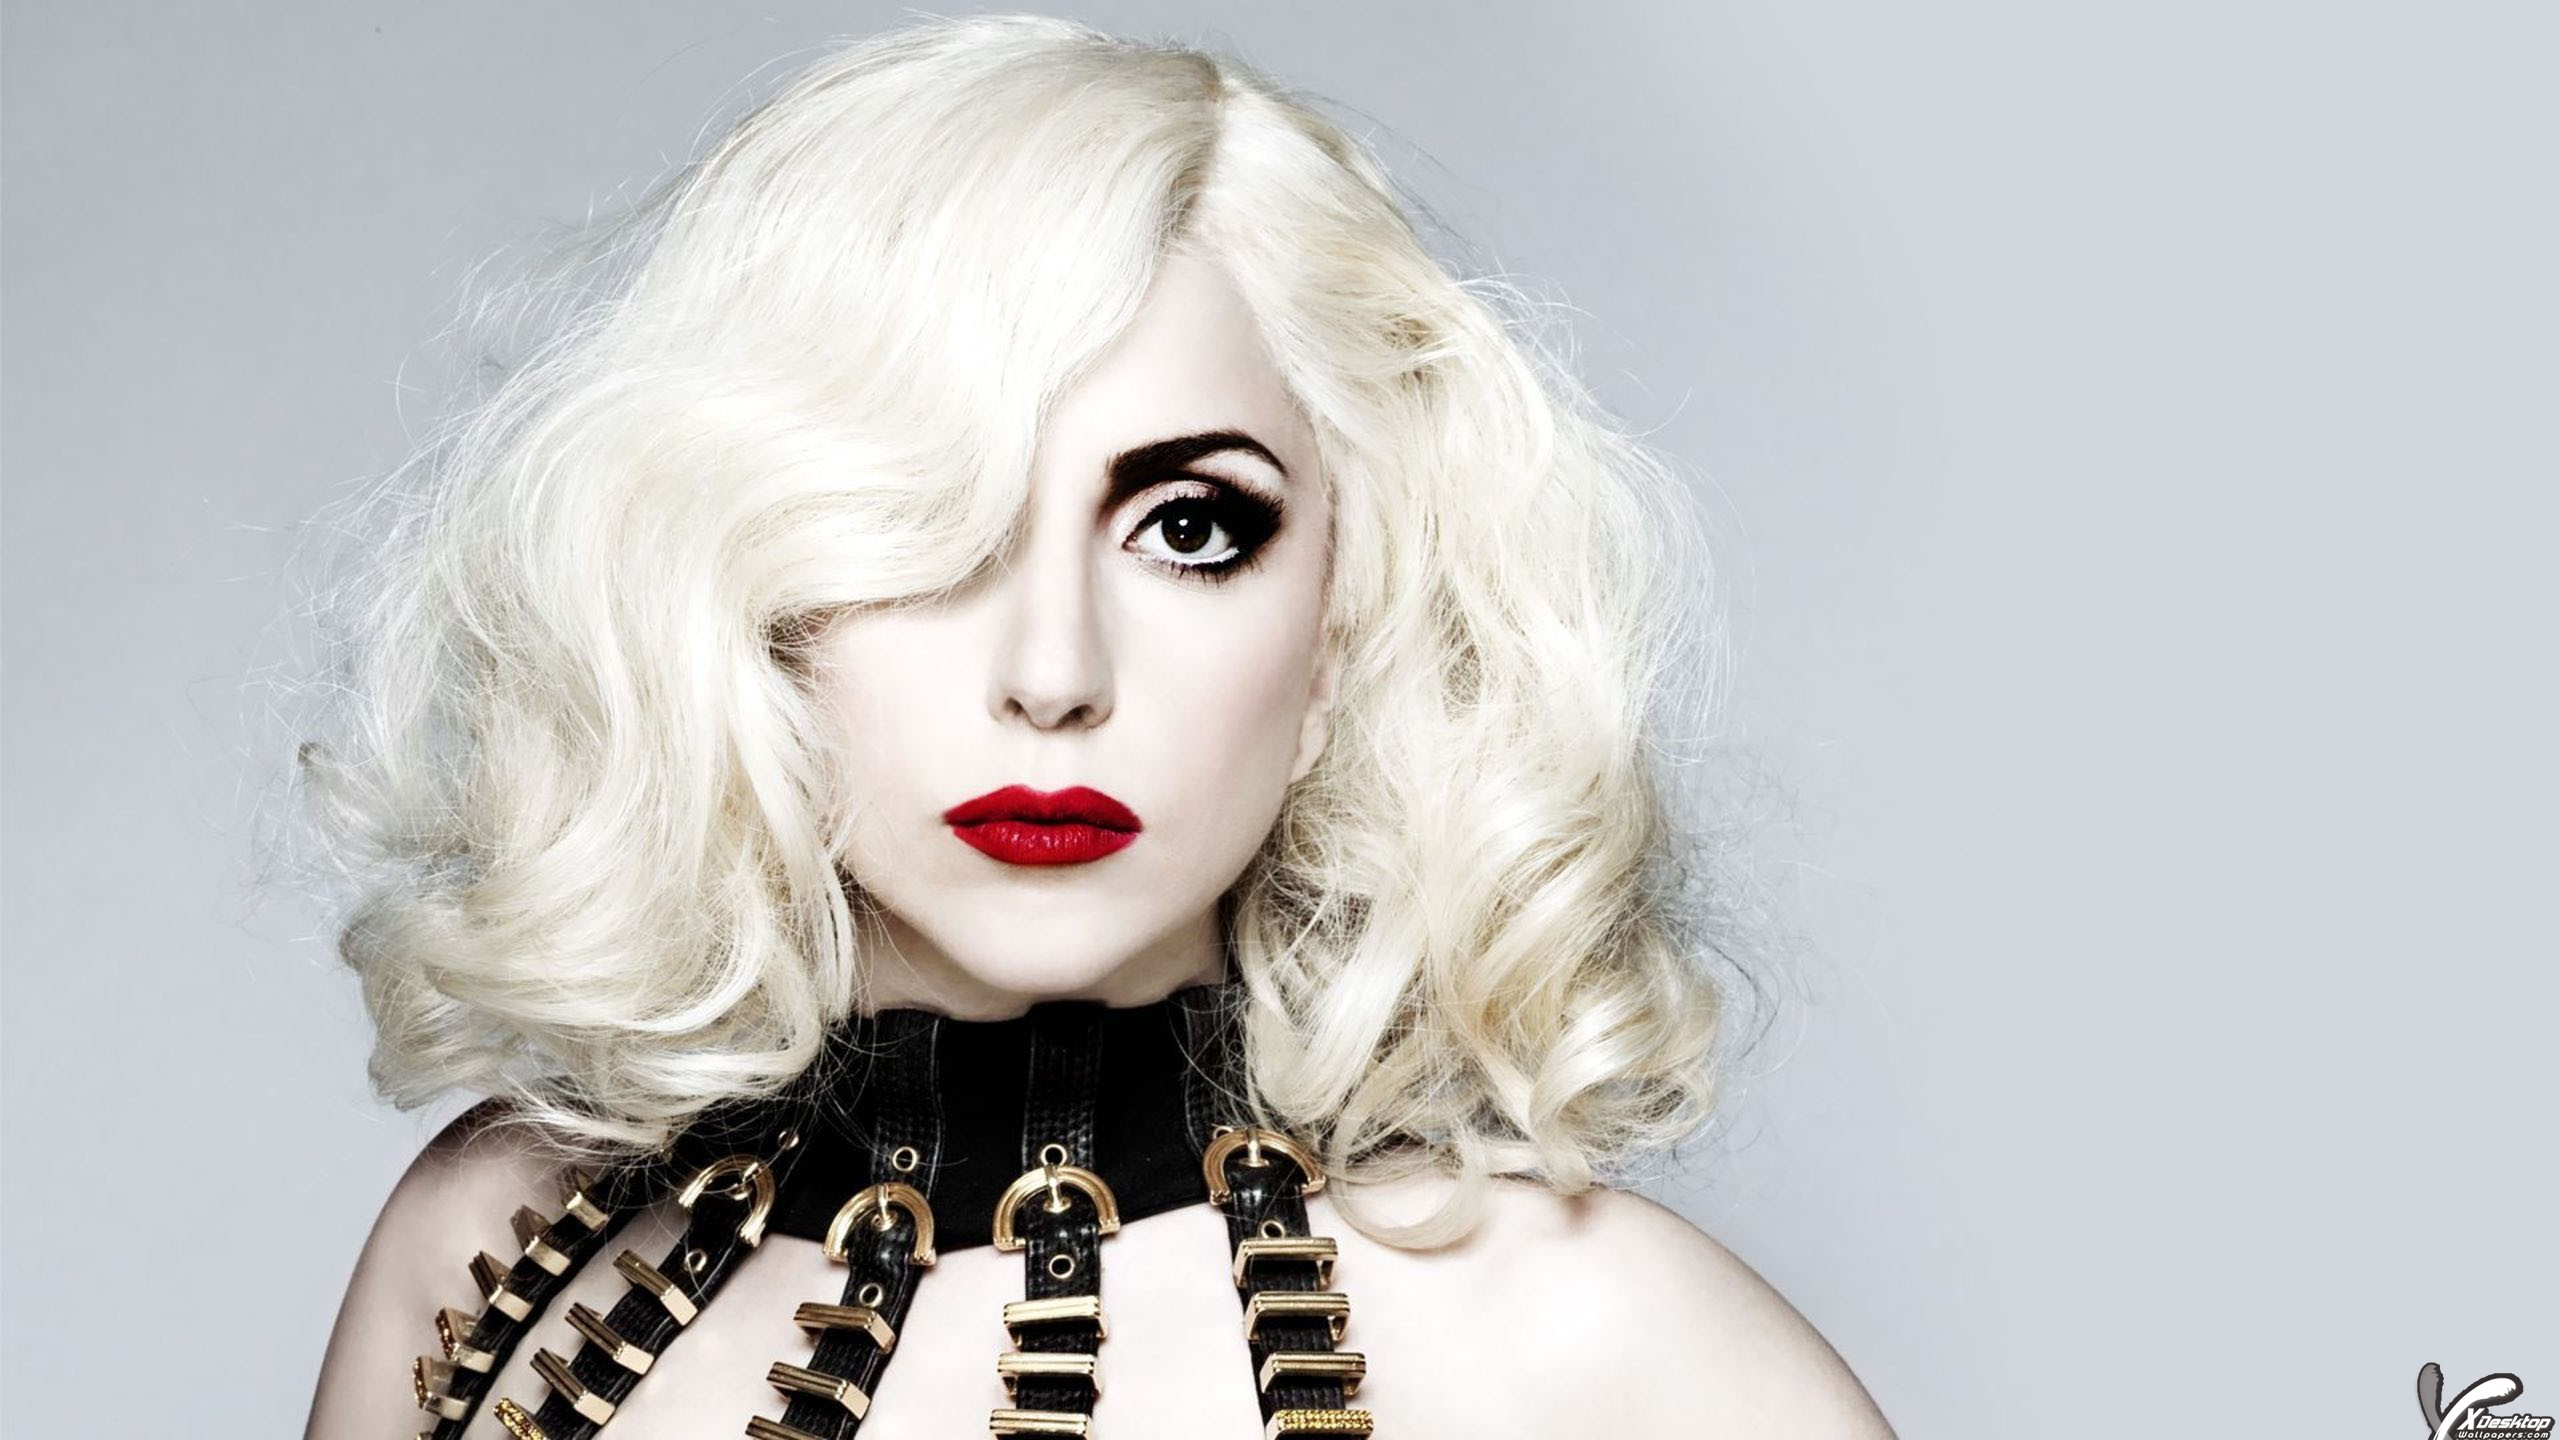 lady gaga white hairs on eyes face closeup wallpaper